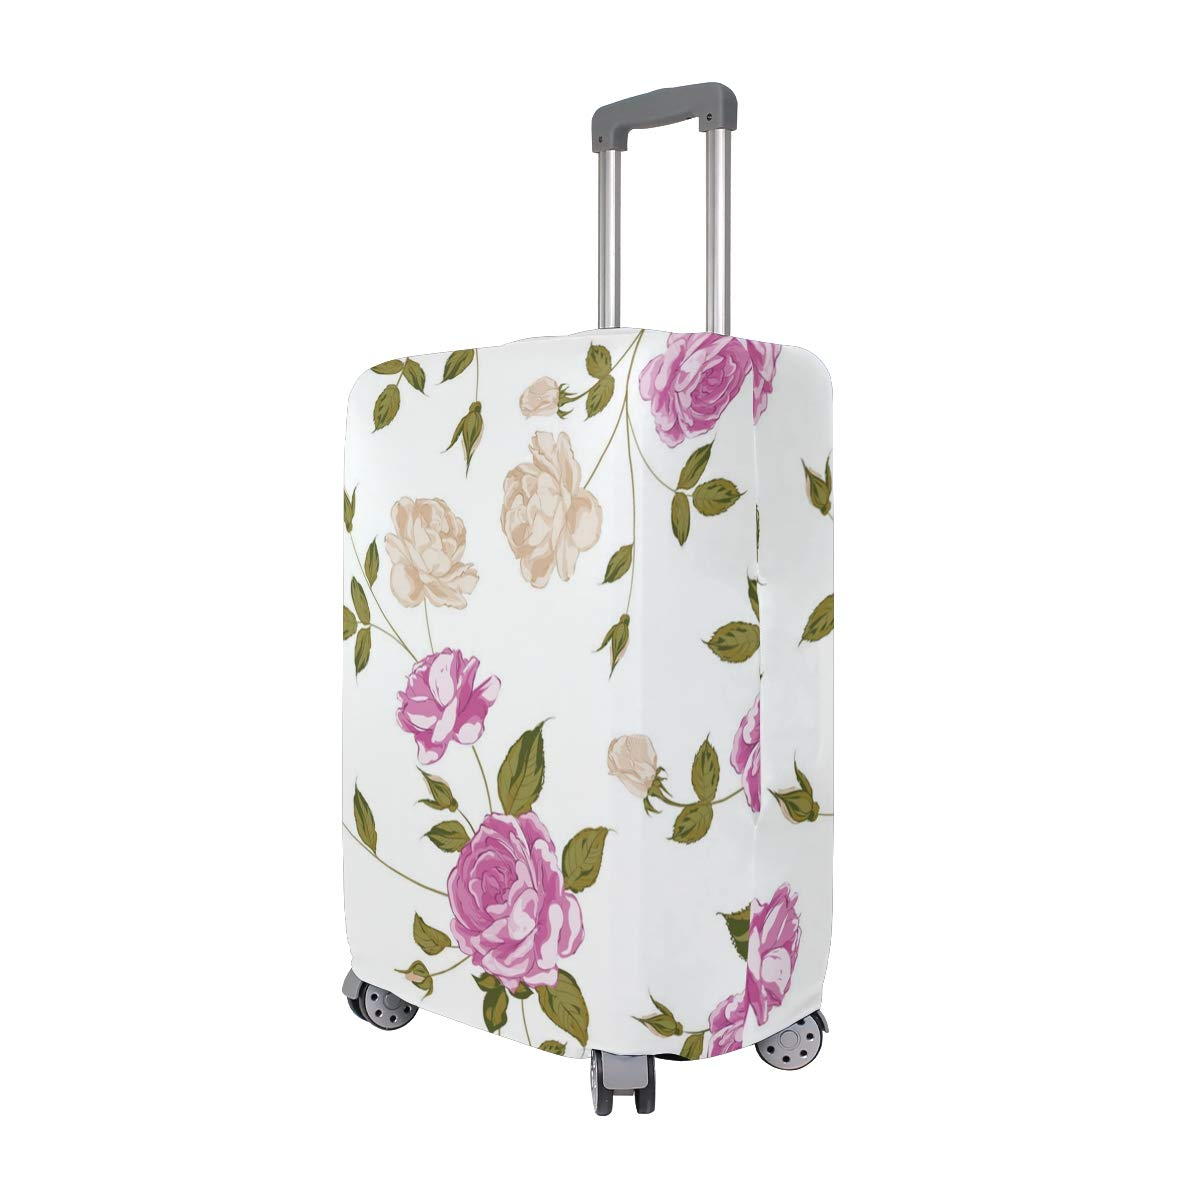 Contains Waiting Time Traveler Lightweight Rotating Luggage Protector Case Can Carry With You Can Expand Travel Bag Trolley Rolling Luggage Protector Case